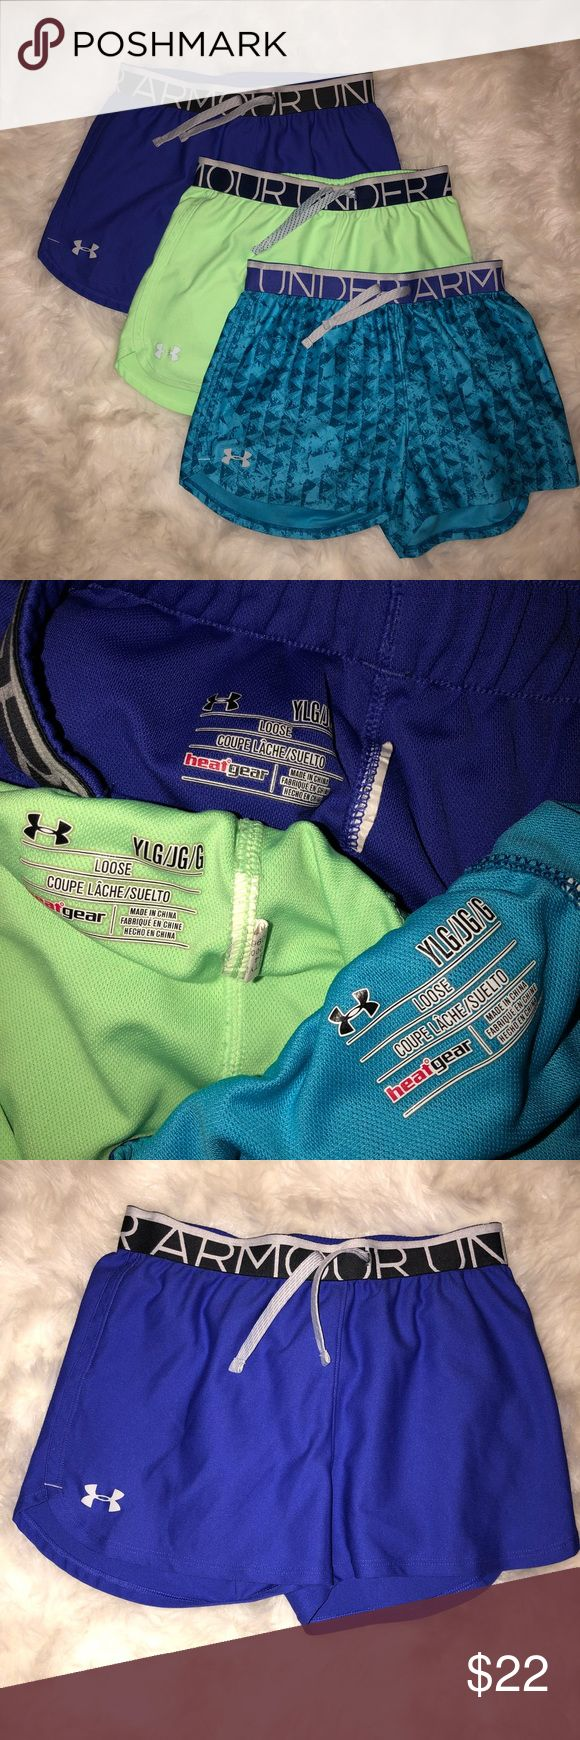 Under Armor Set of Shorts Youth L This set comes with dark purple shorts lime green shorts and light and dark blue shorts. The purple and blue shorts are in perfect condition. The green ones has small spots on the front and back. But overall in good condition! Under Armour Bottoms Shorts